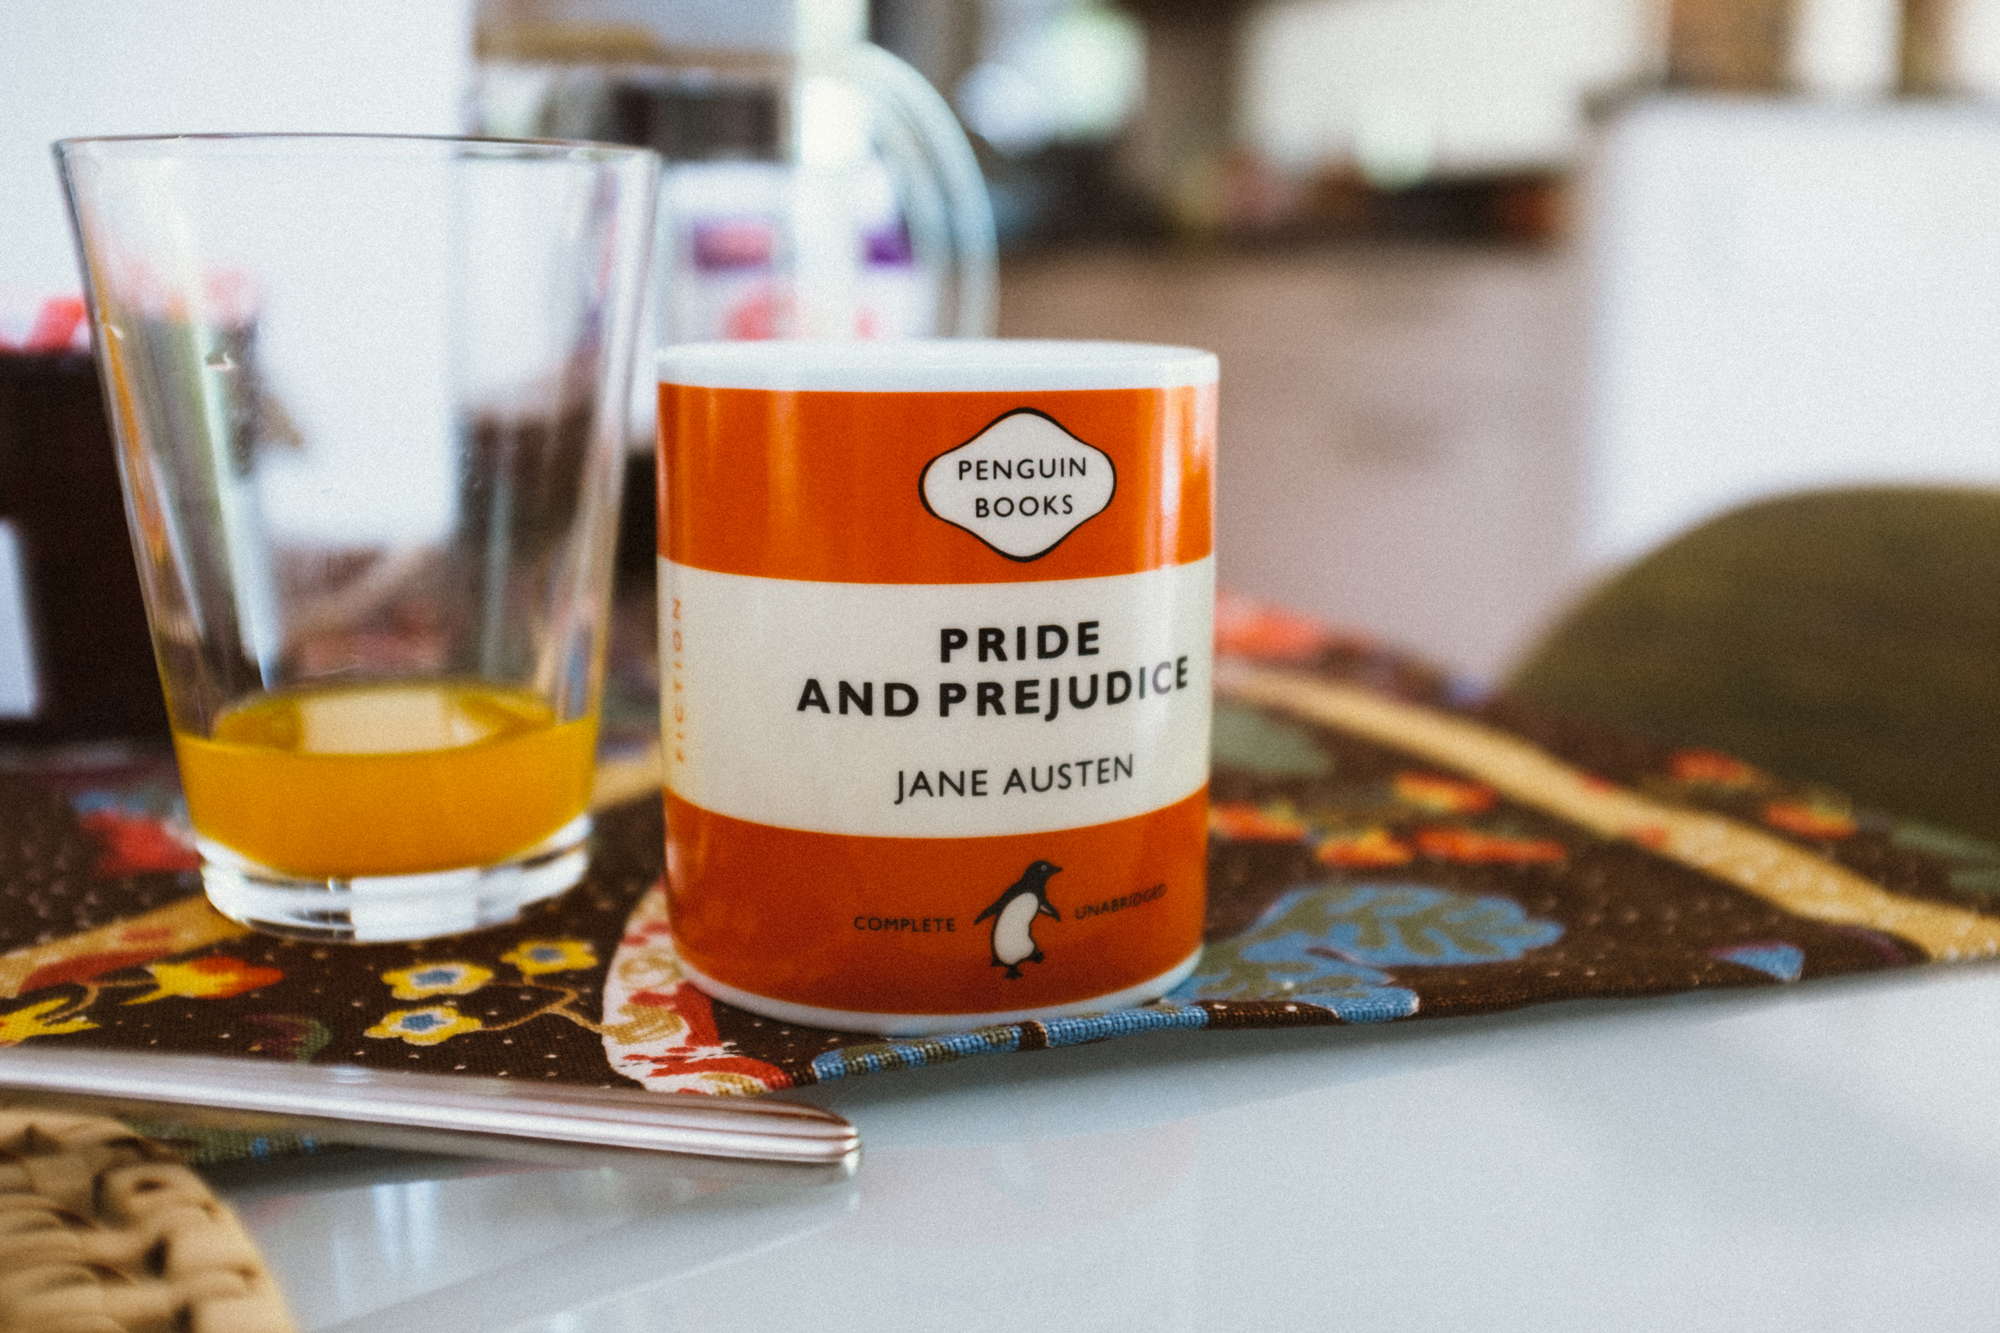 So many penguin books in the house and mugs to match. <3